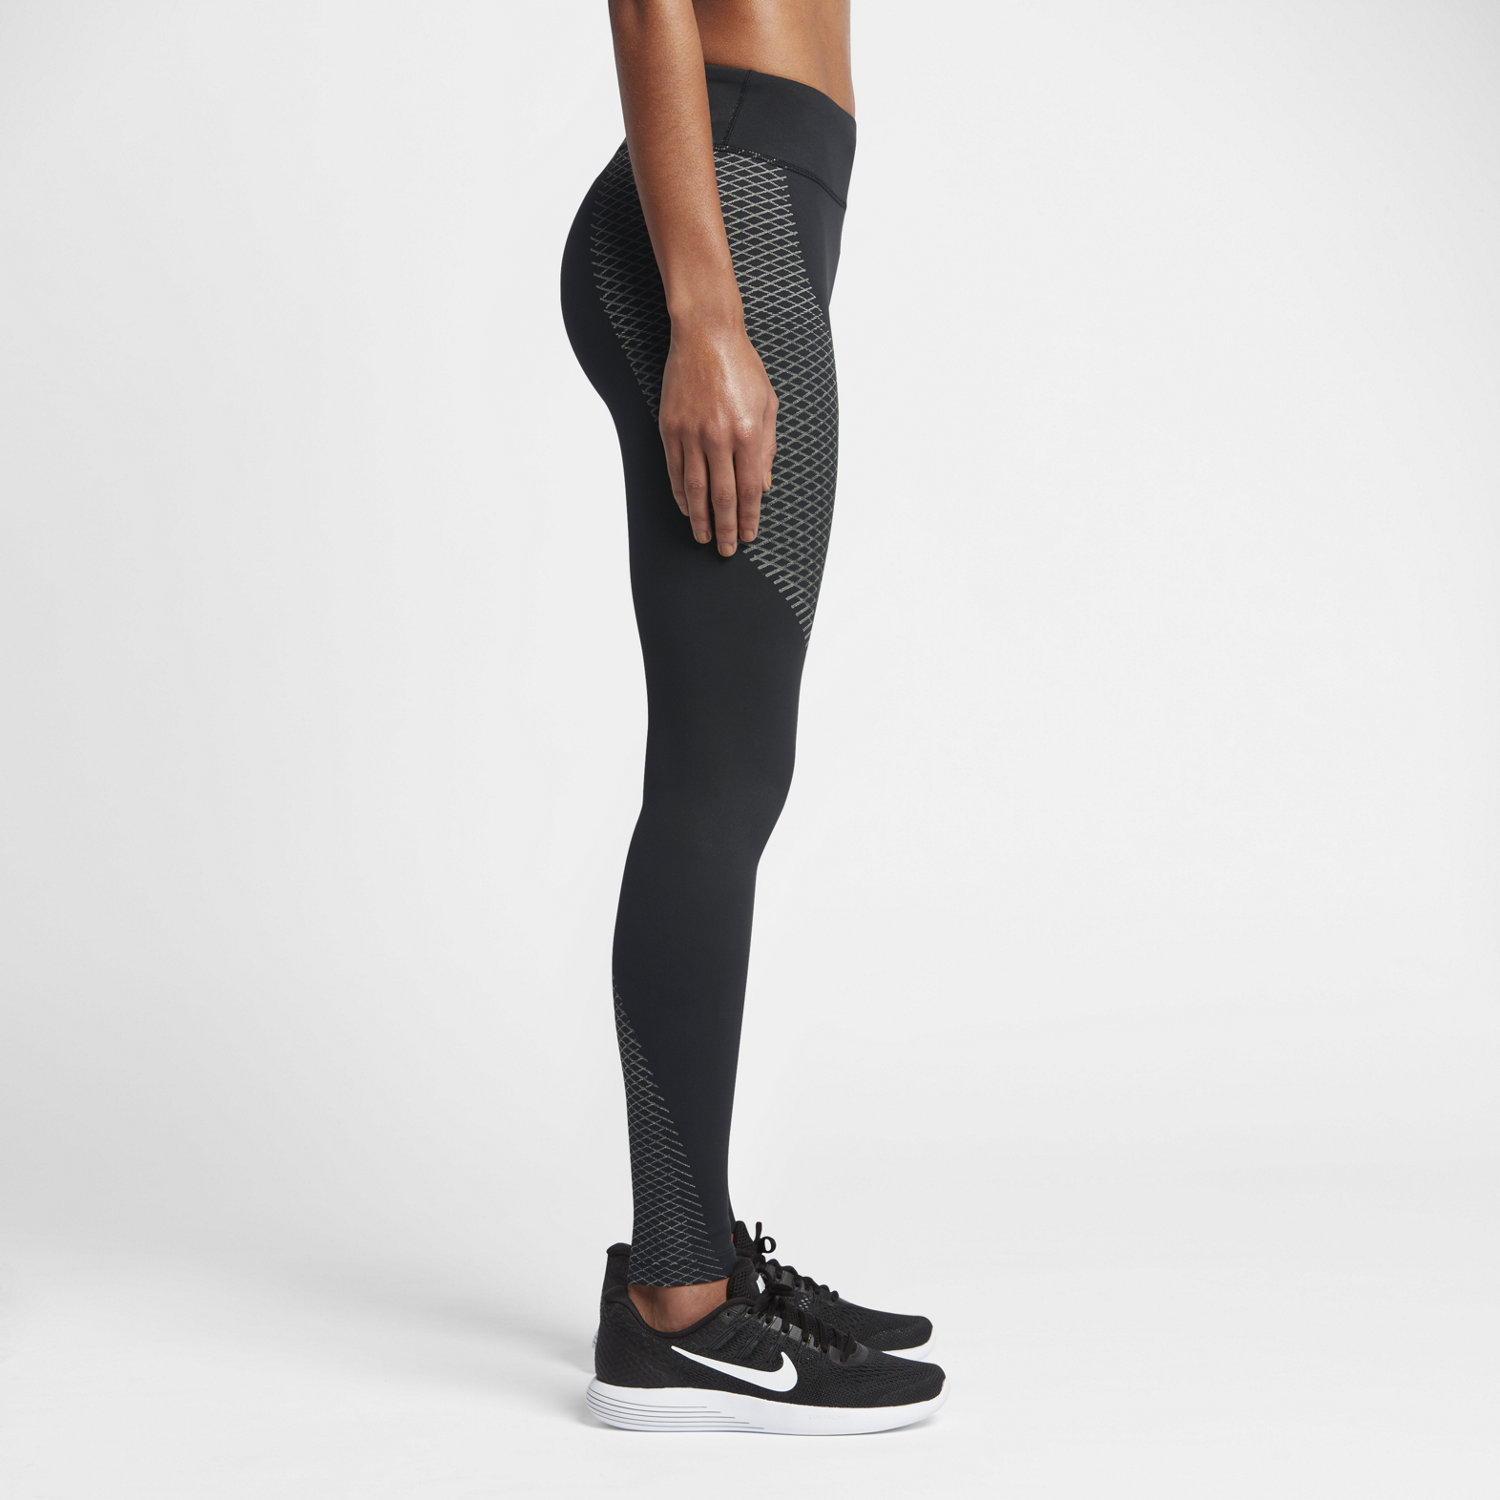 air jordan womens tights